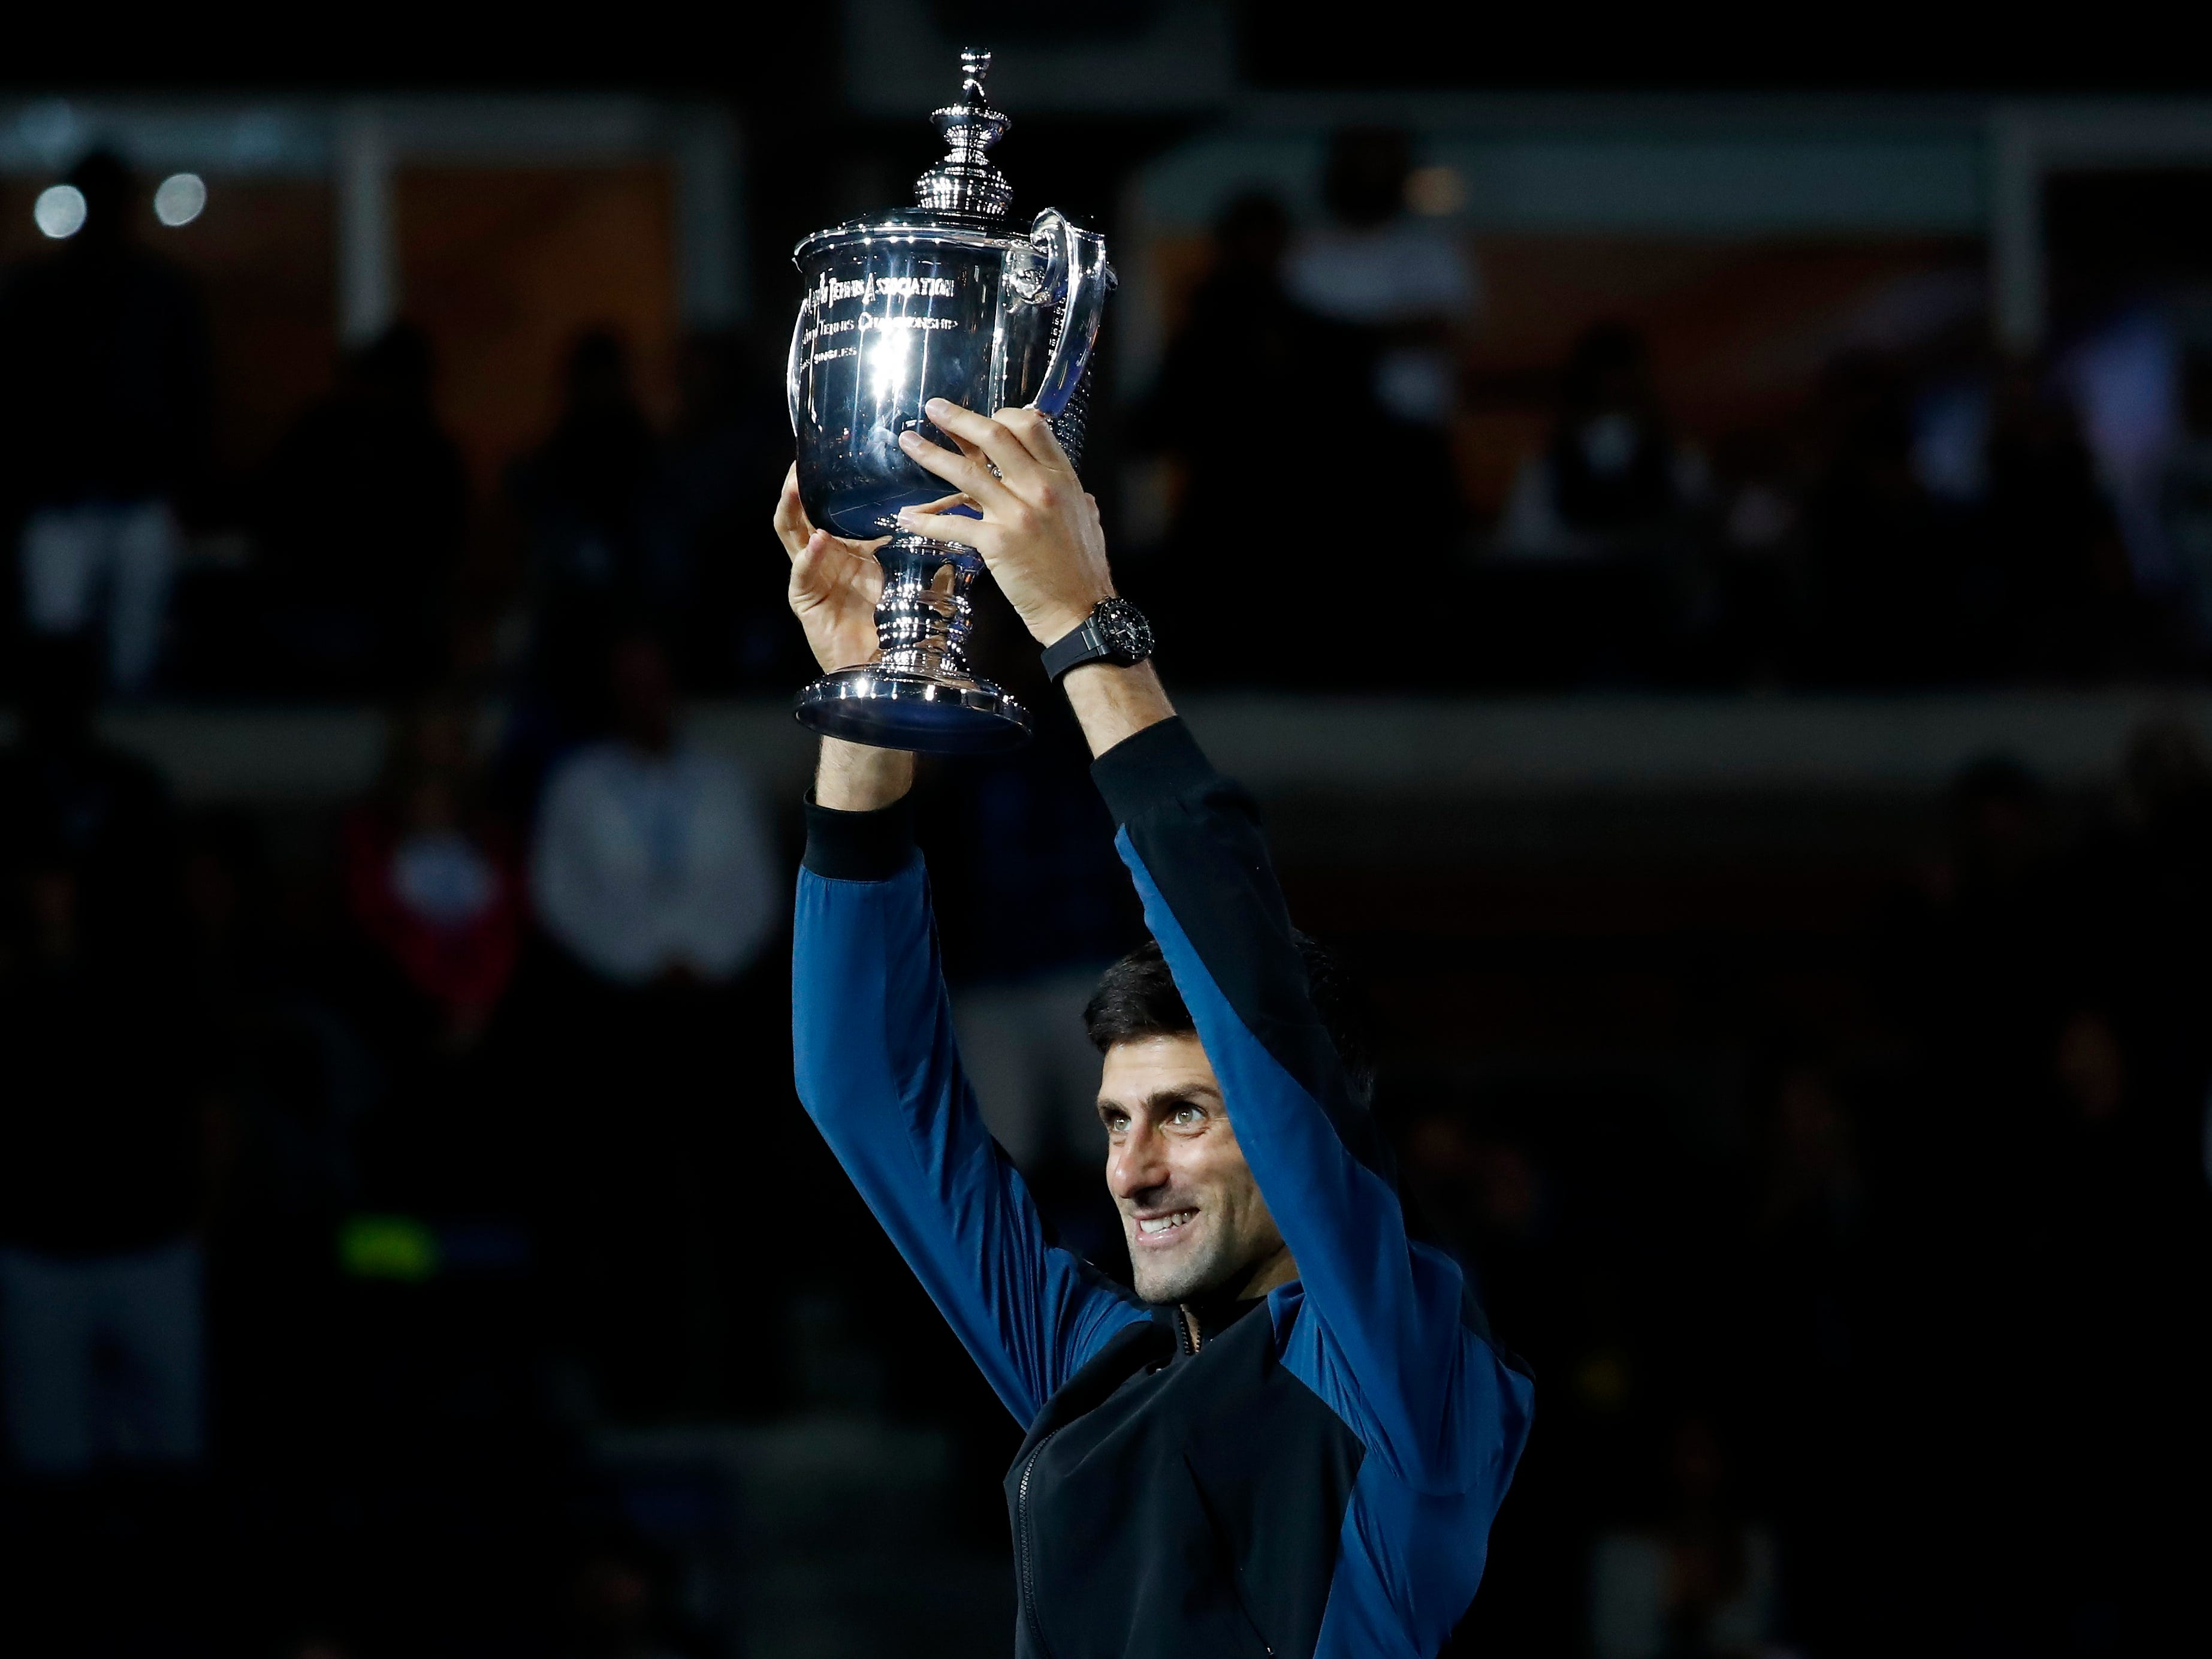 Novak Djokovic celebrates after winning his third career US Open title and 14th career Grand Slam championship.